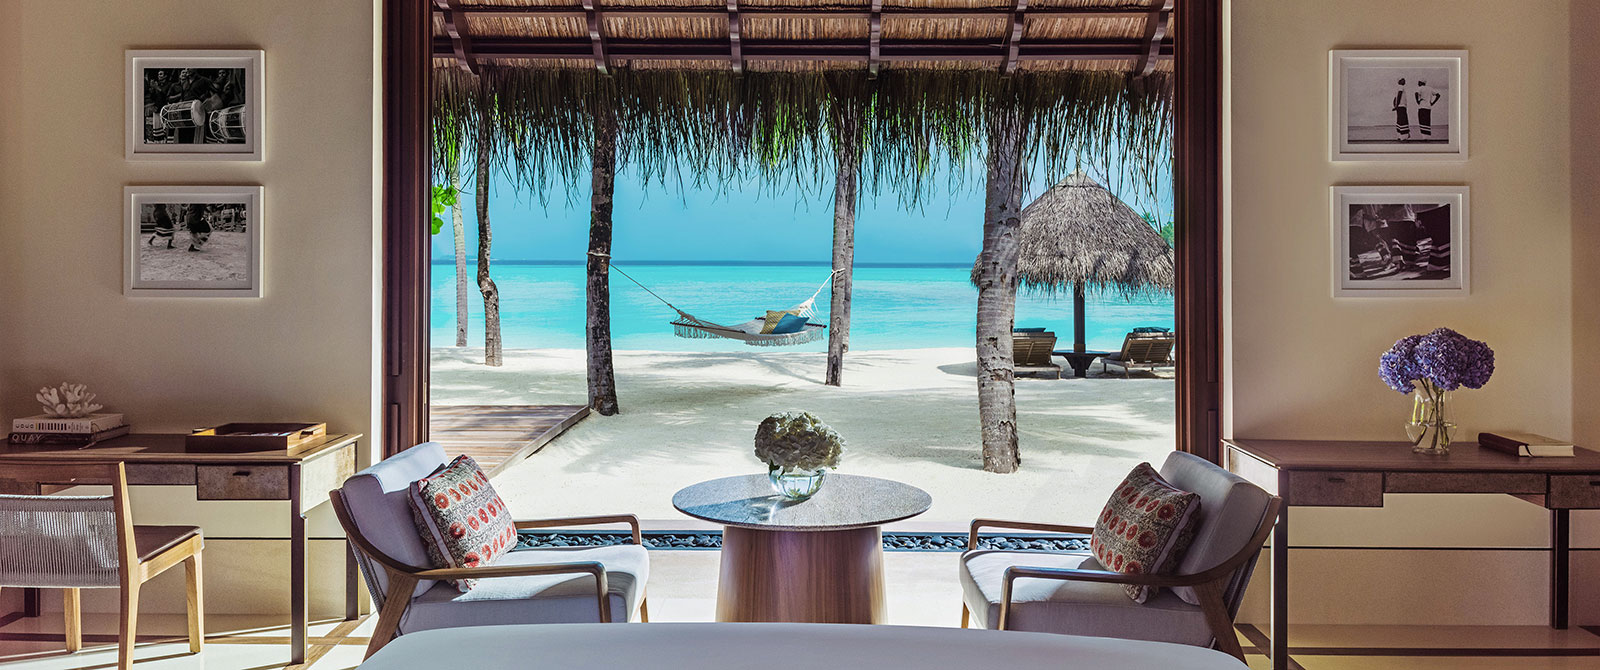 One&Only Reethi Rah Resort Maldives - View from Beach Villa Bedroom